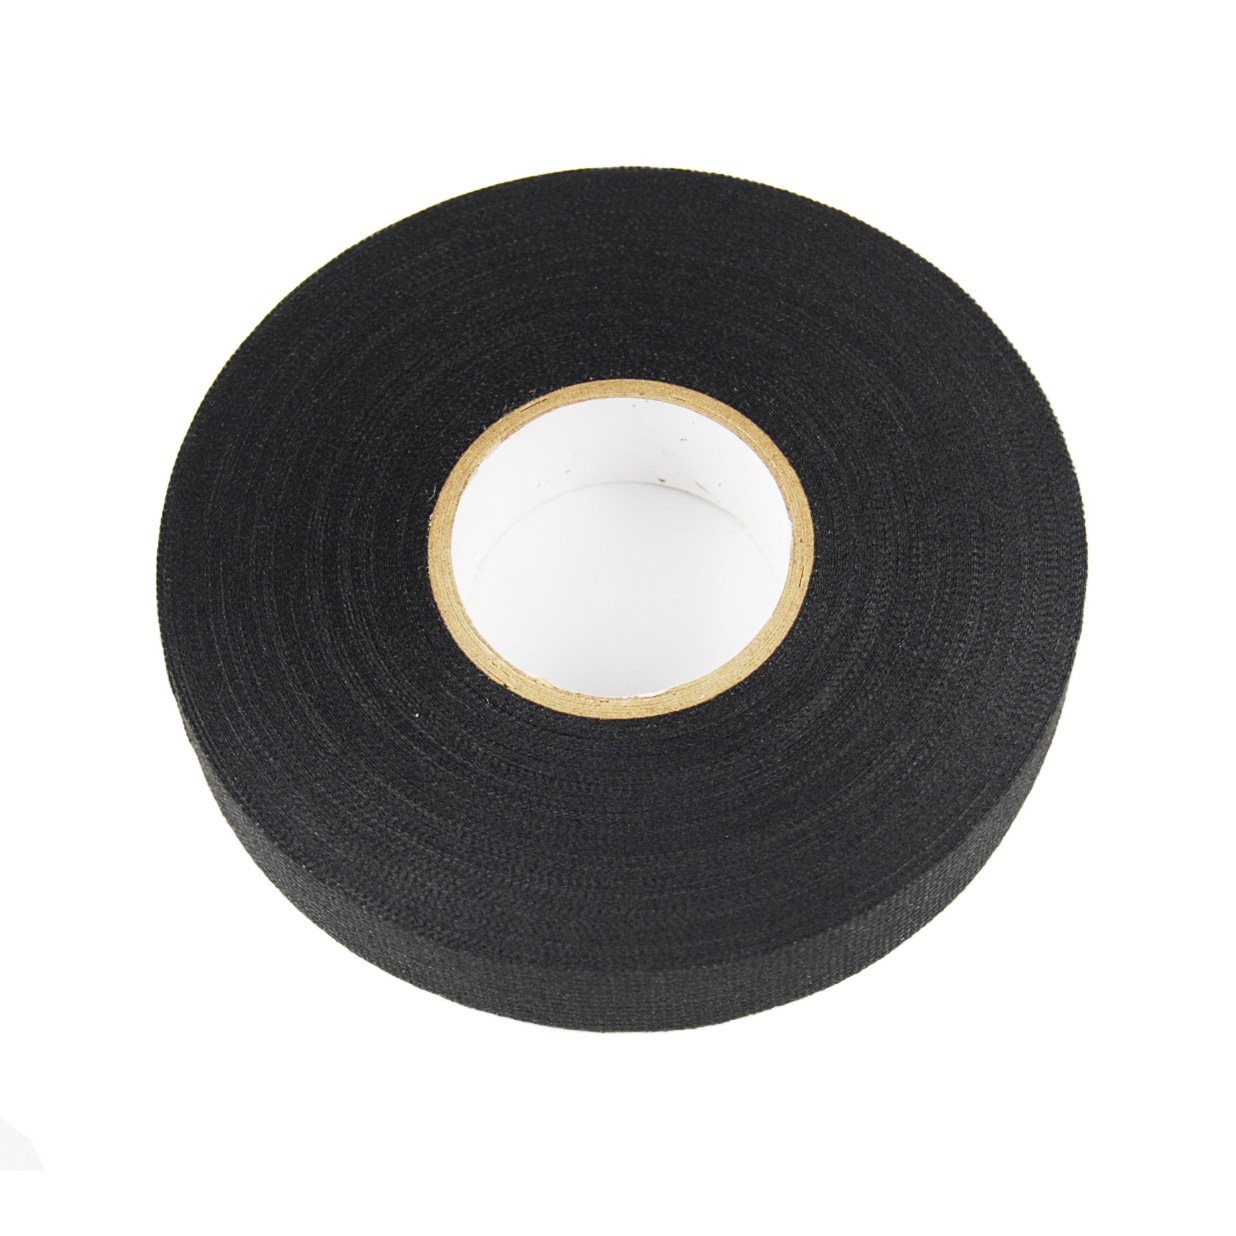 71j3xOvCF3L._SL1236_ amazon com novosonics 51618 automotive cloth tape, wire loom wire loom harness tape at soozxer.org